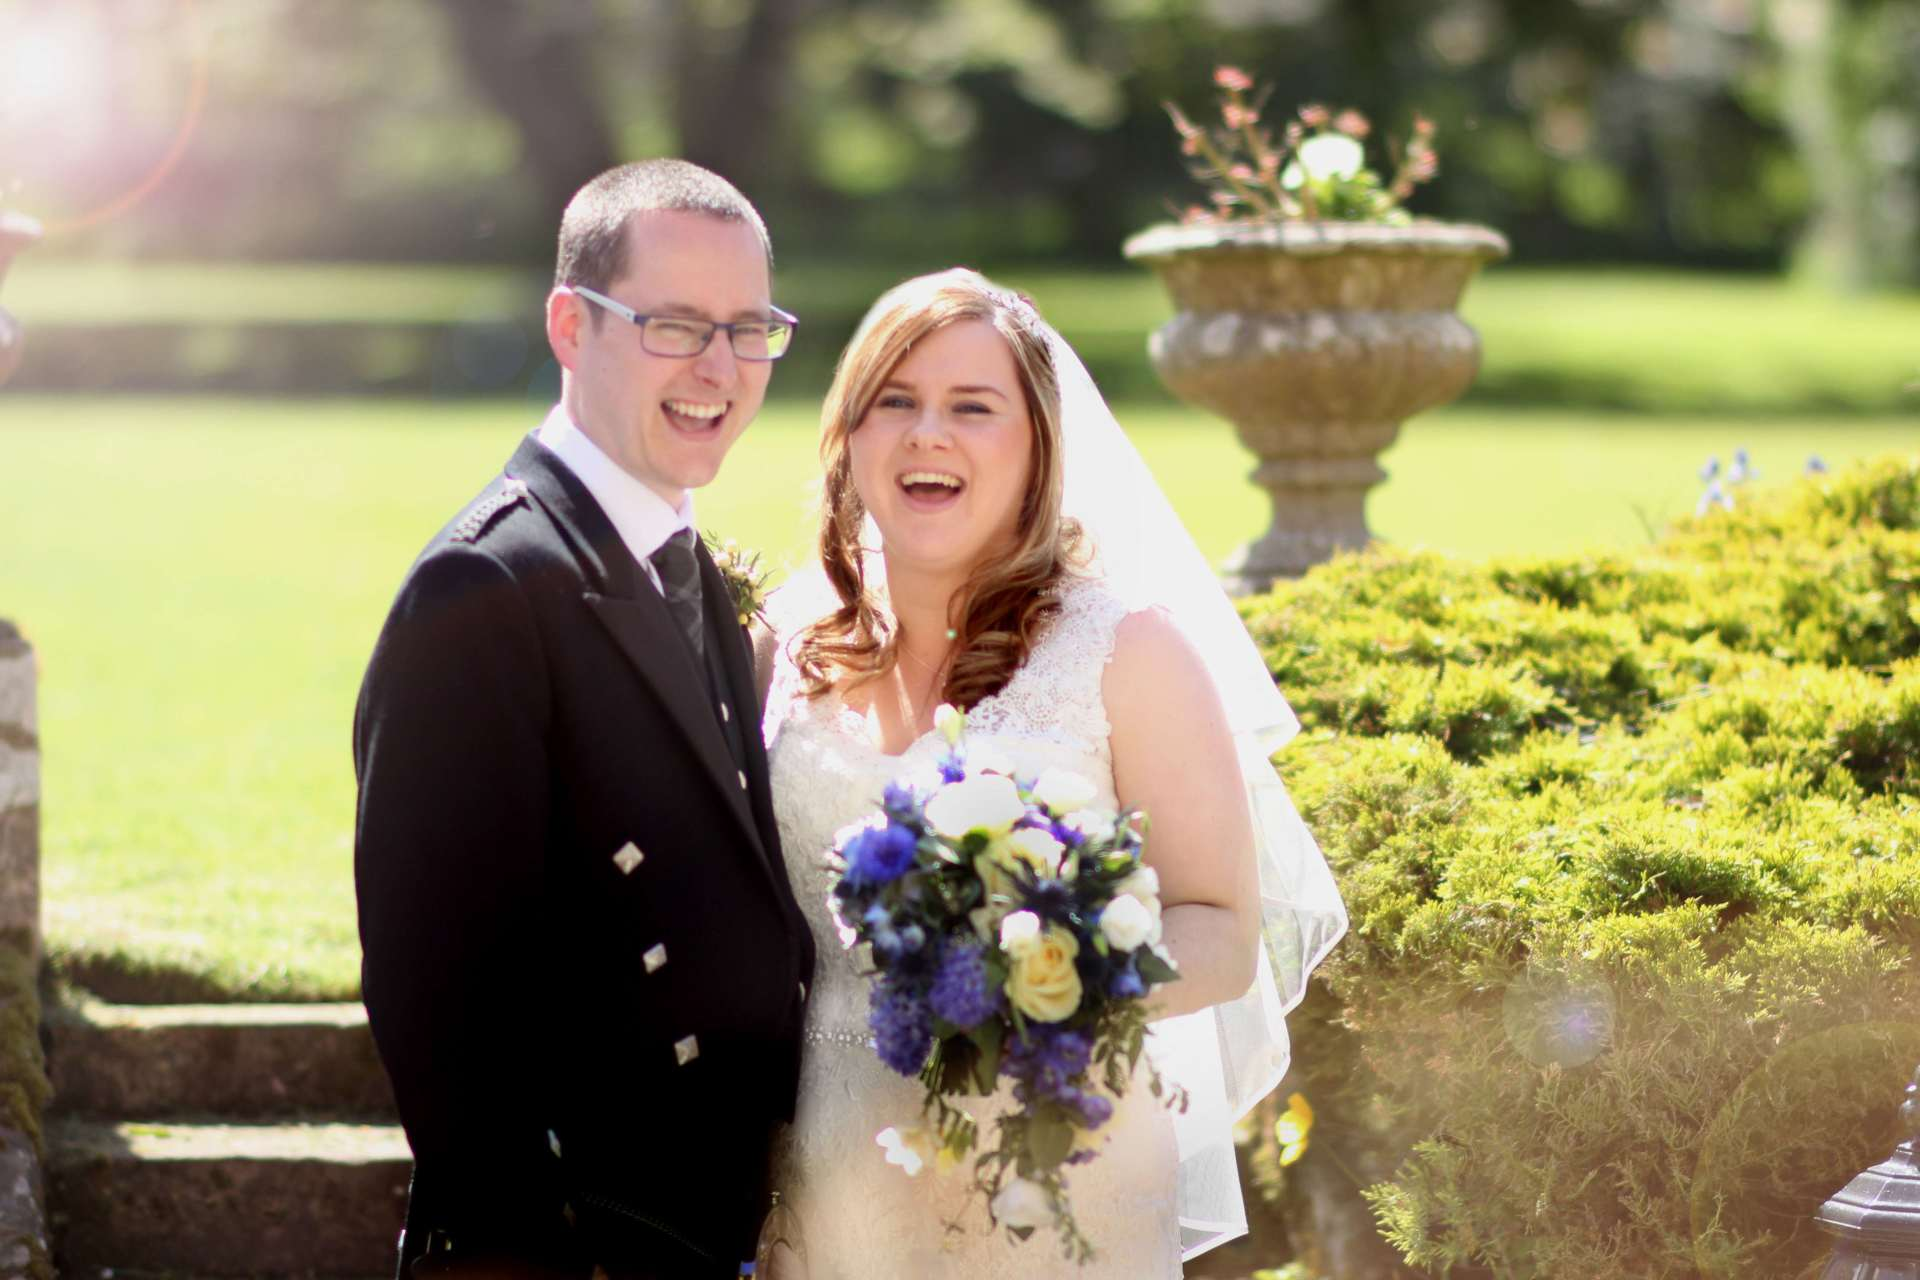 Wedding Photography Edinburgh - Paul & Lyndsay